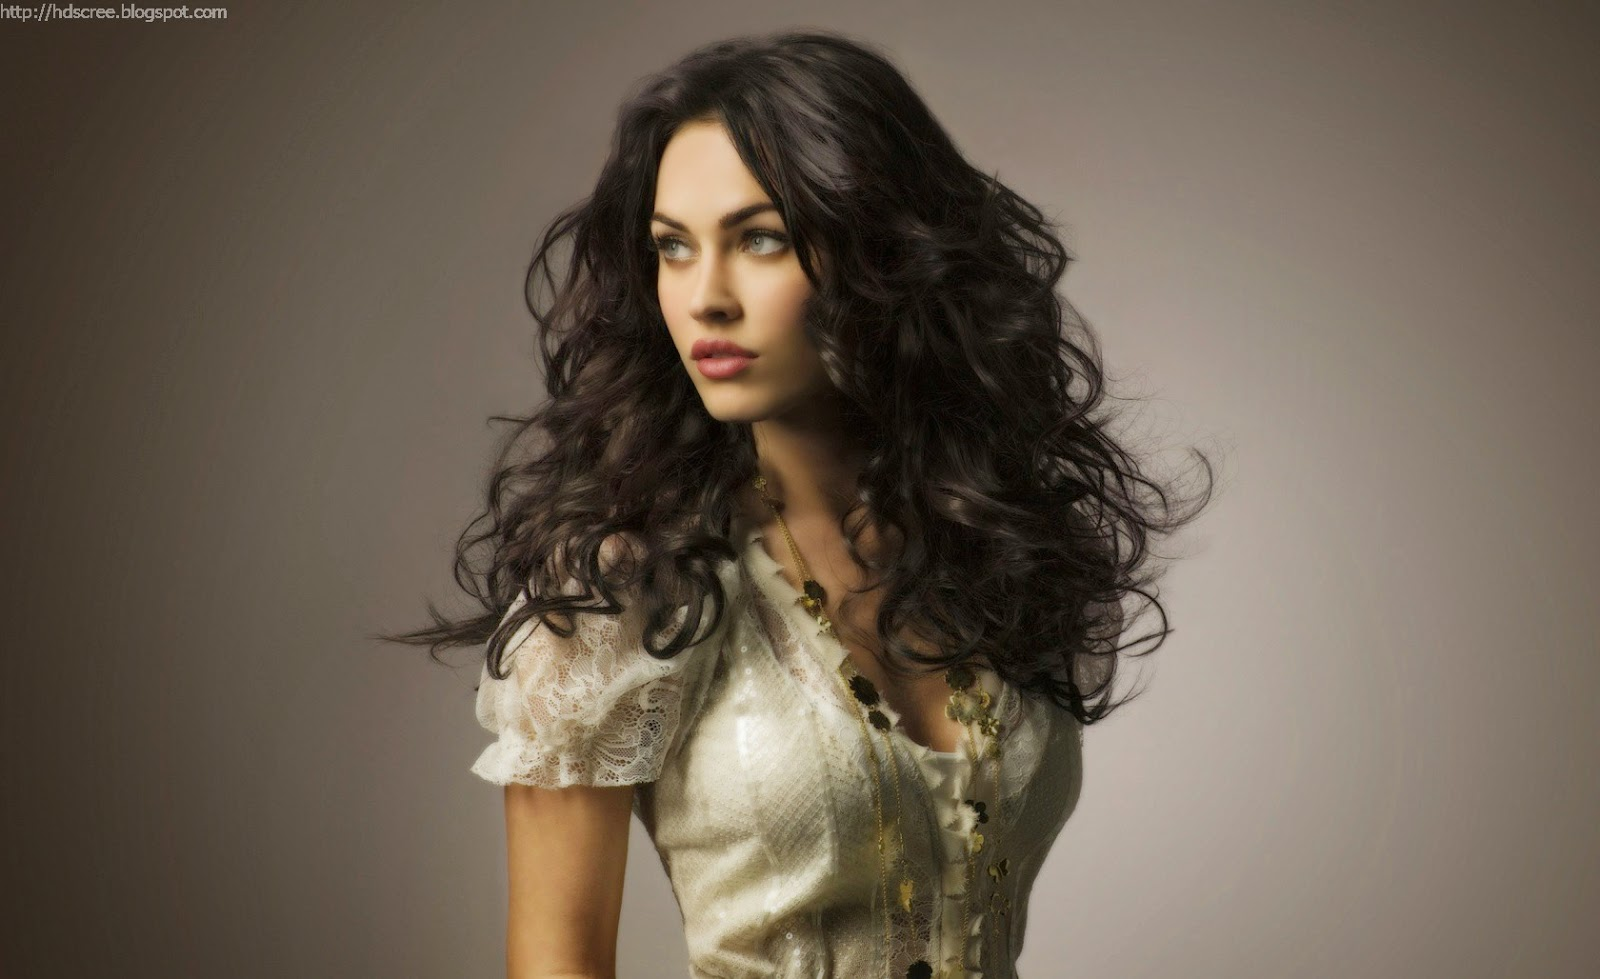 very beautiful hd wallpaper of megan fox